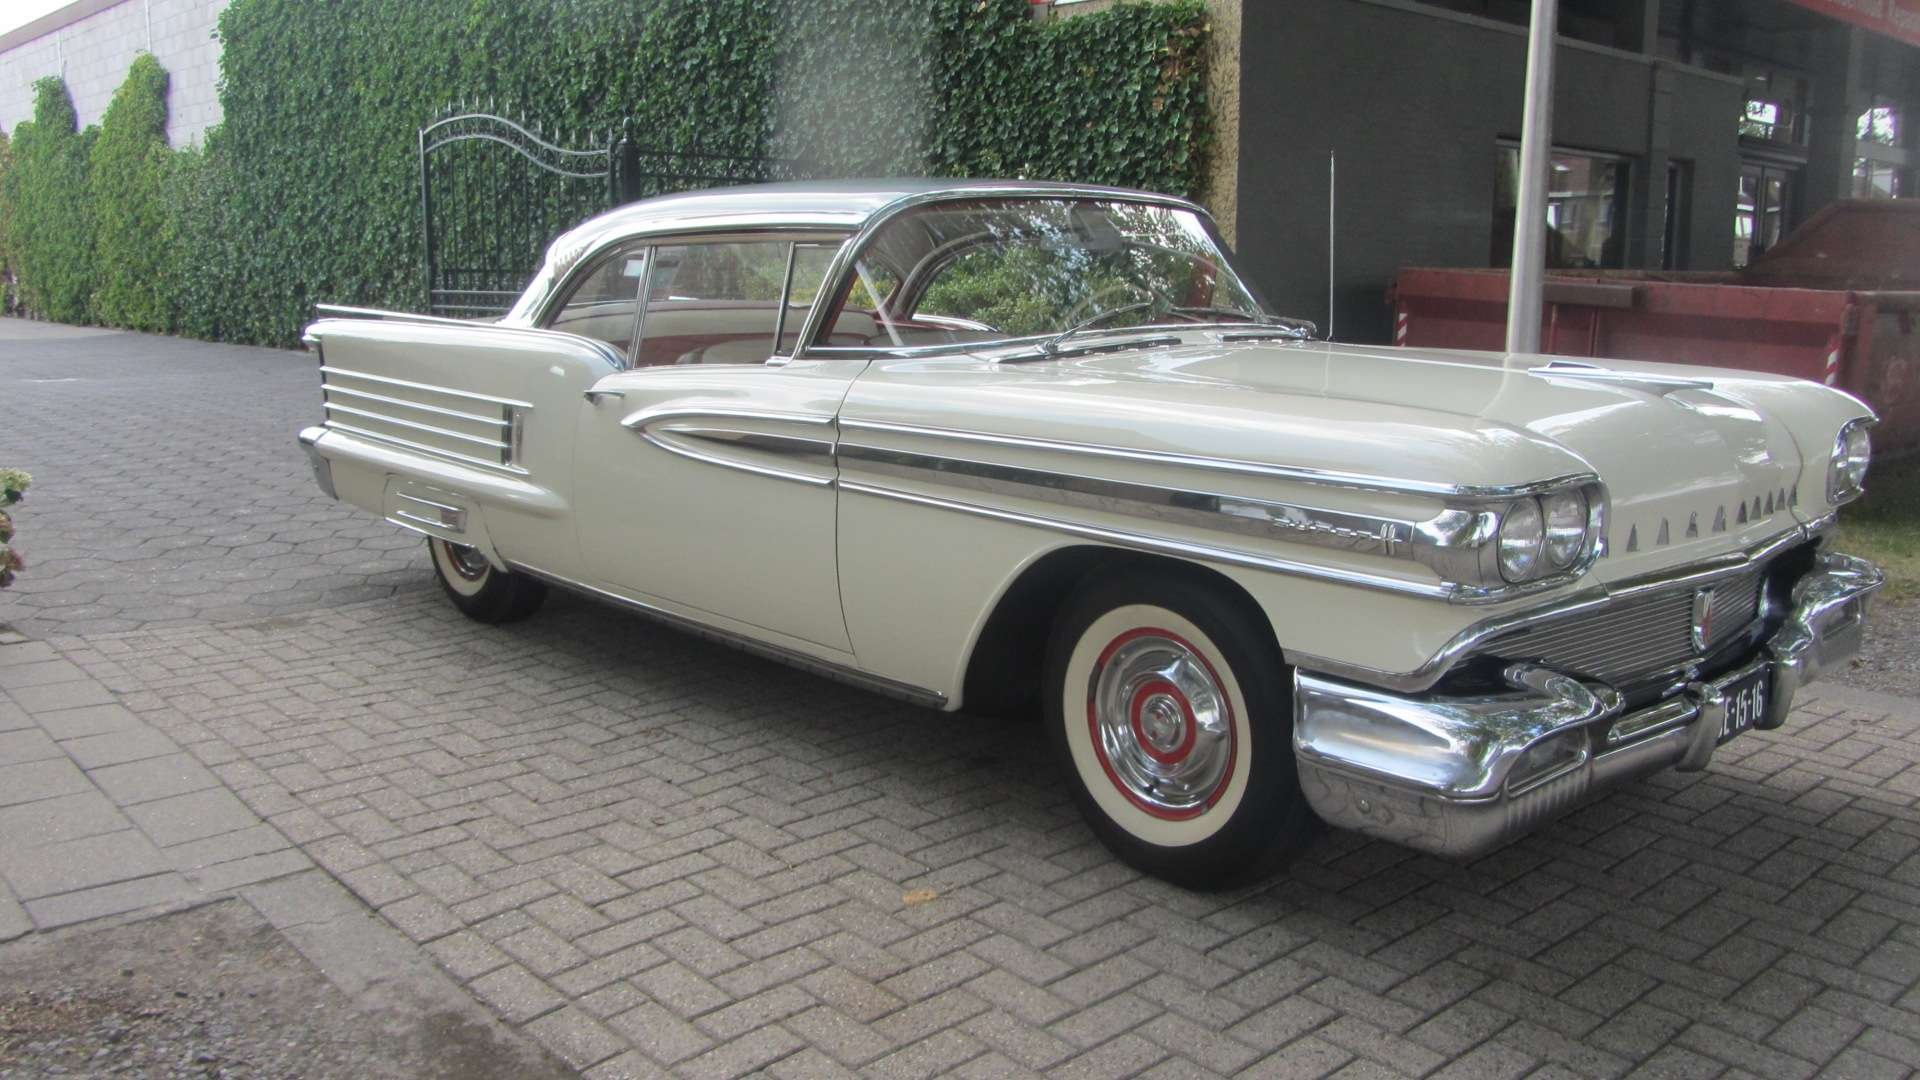 Oldsmobile Super 88 Coupe Nice Car 1958 & 50 USA Classics For Sale (picture 3 of 6)